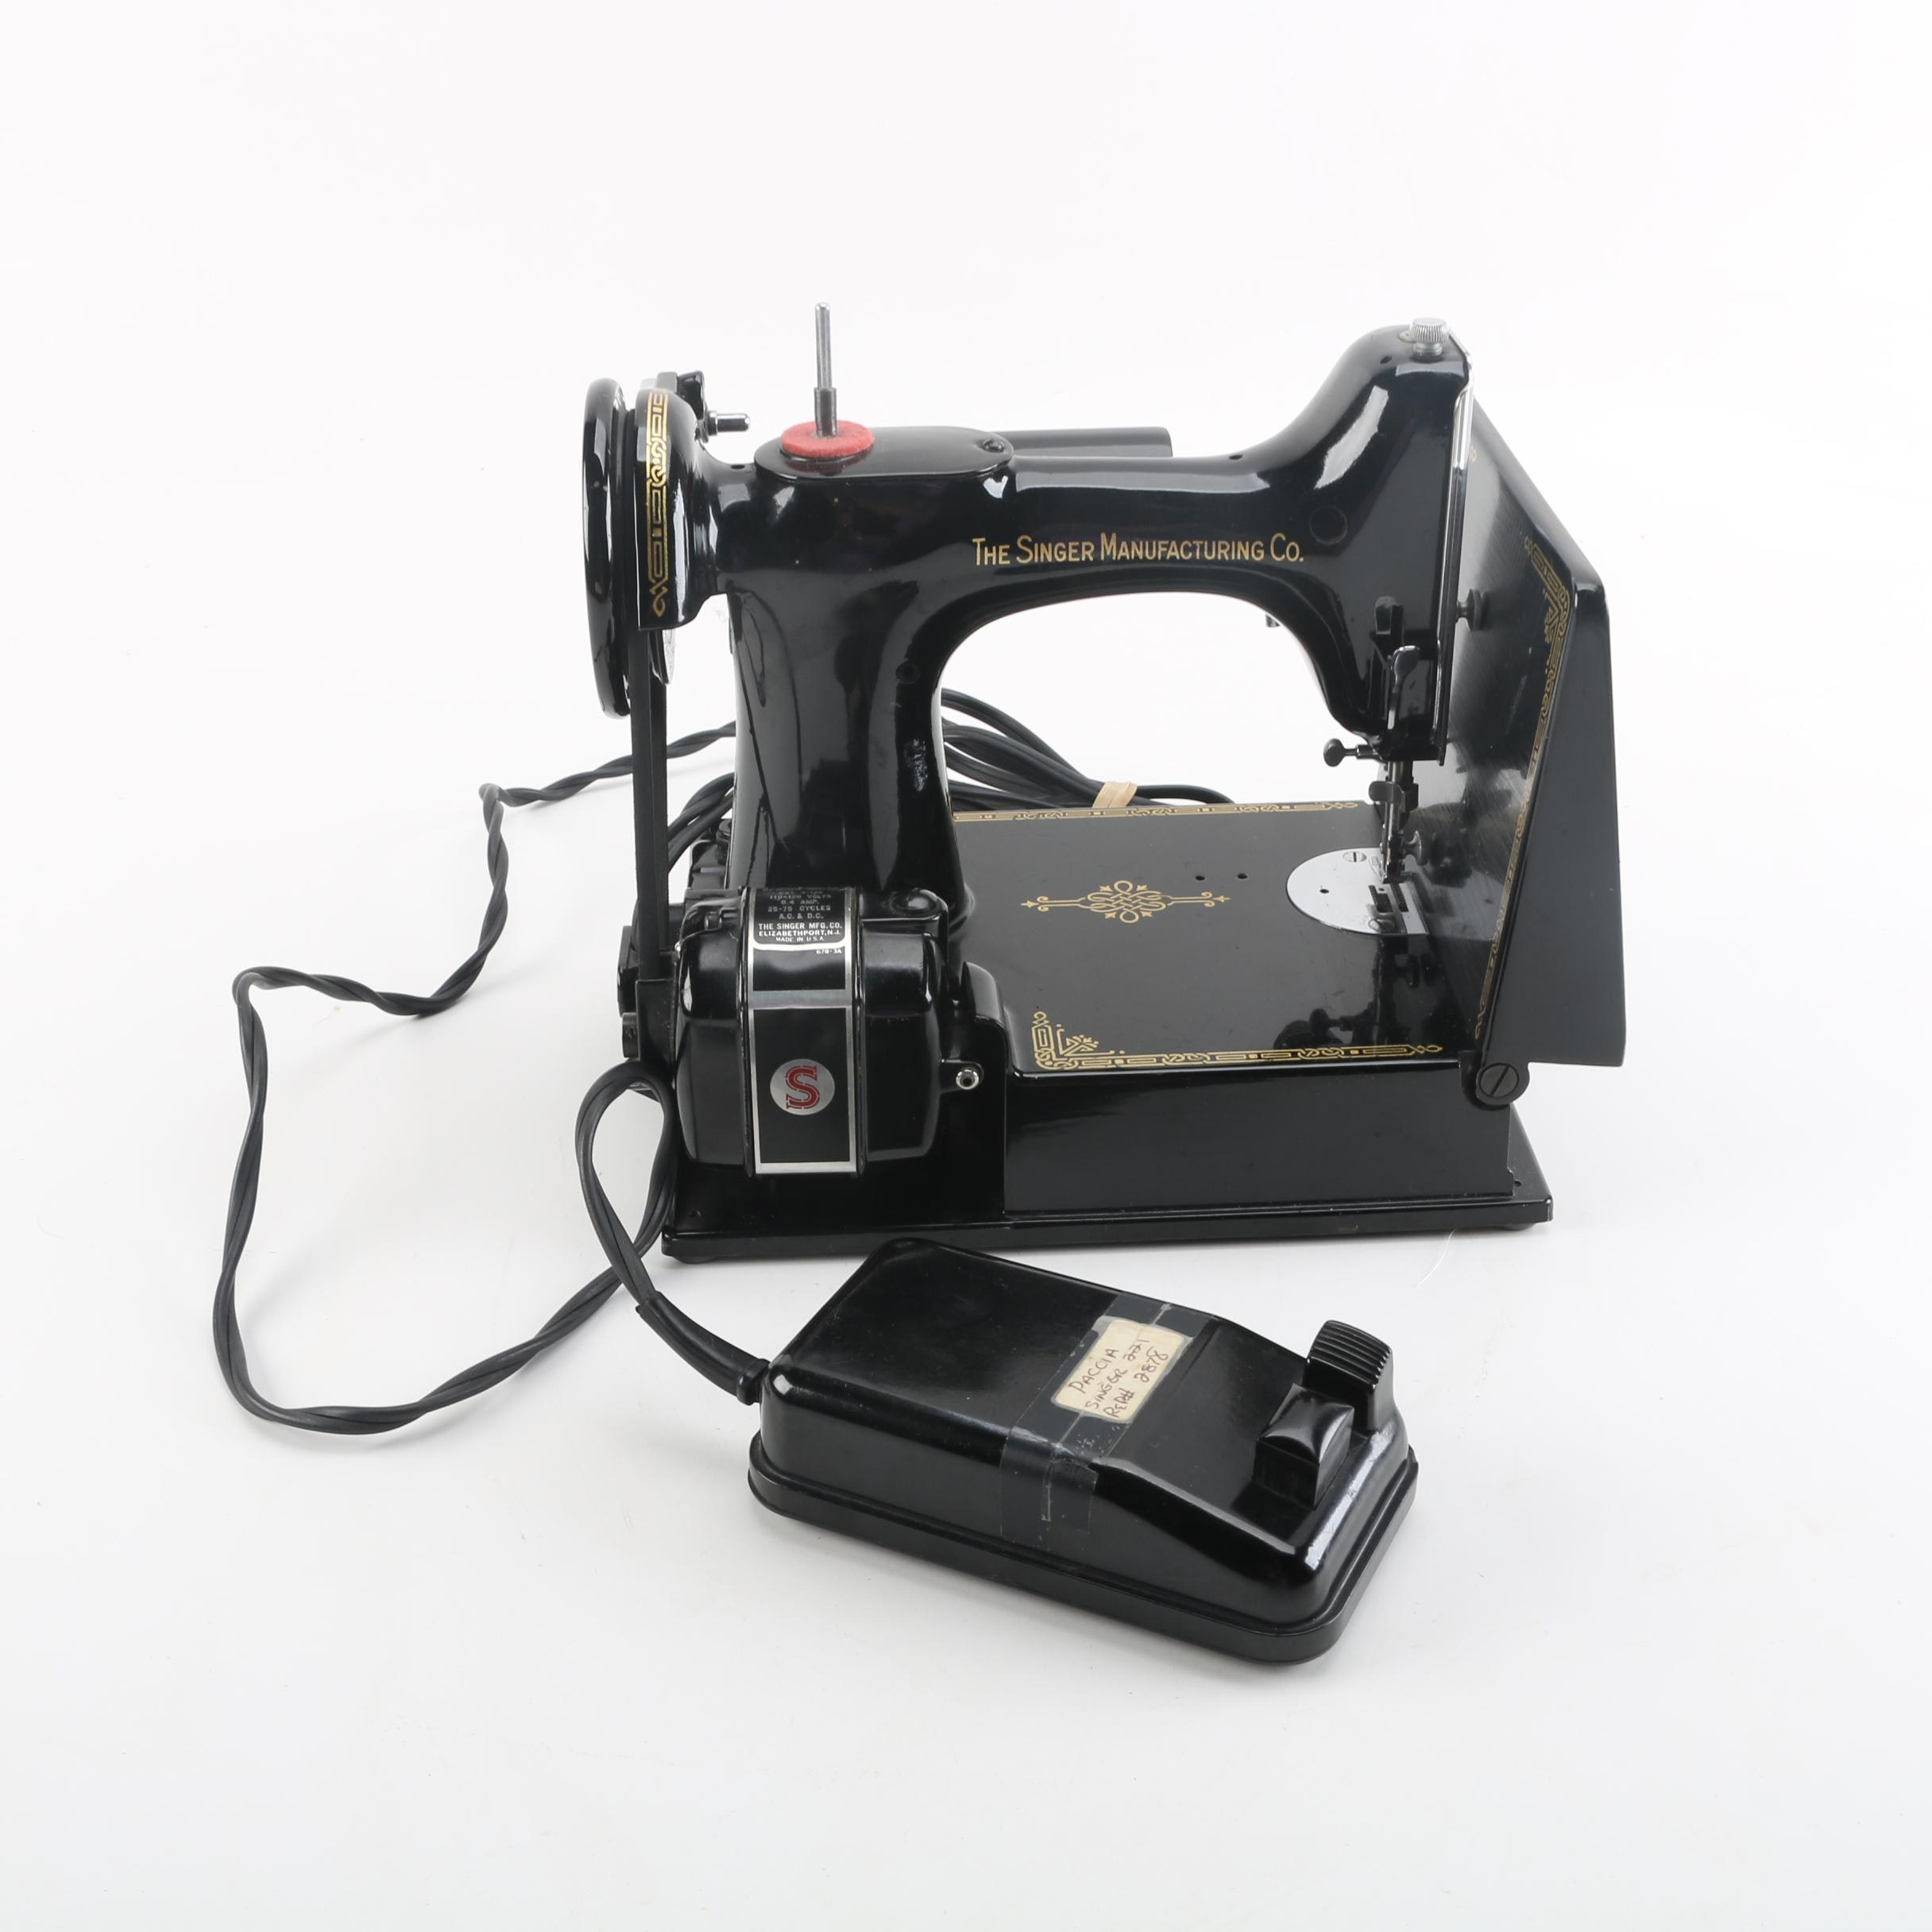 1950 Singer Featherweight Model 221 Sewing Machine